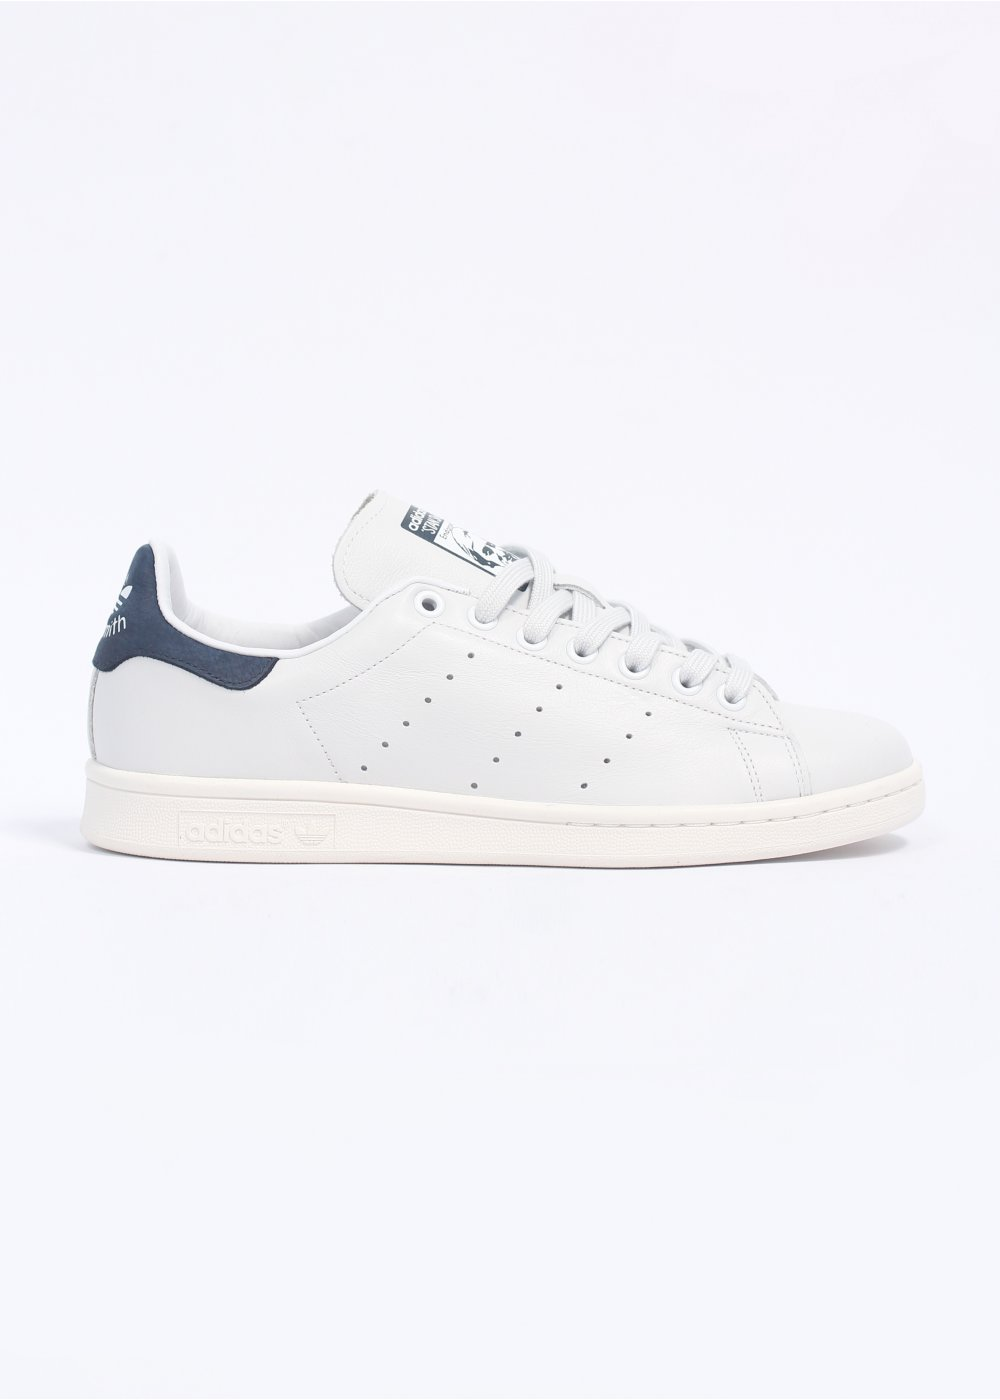 Stan Smith Vintage Leather Trainers - Neo White / New Navy